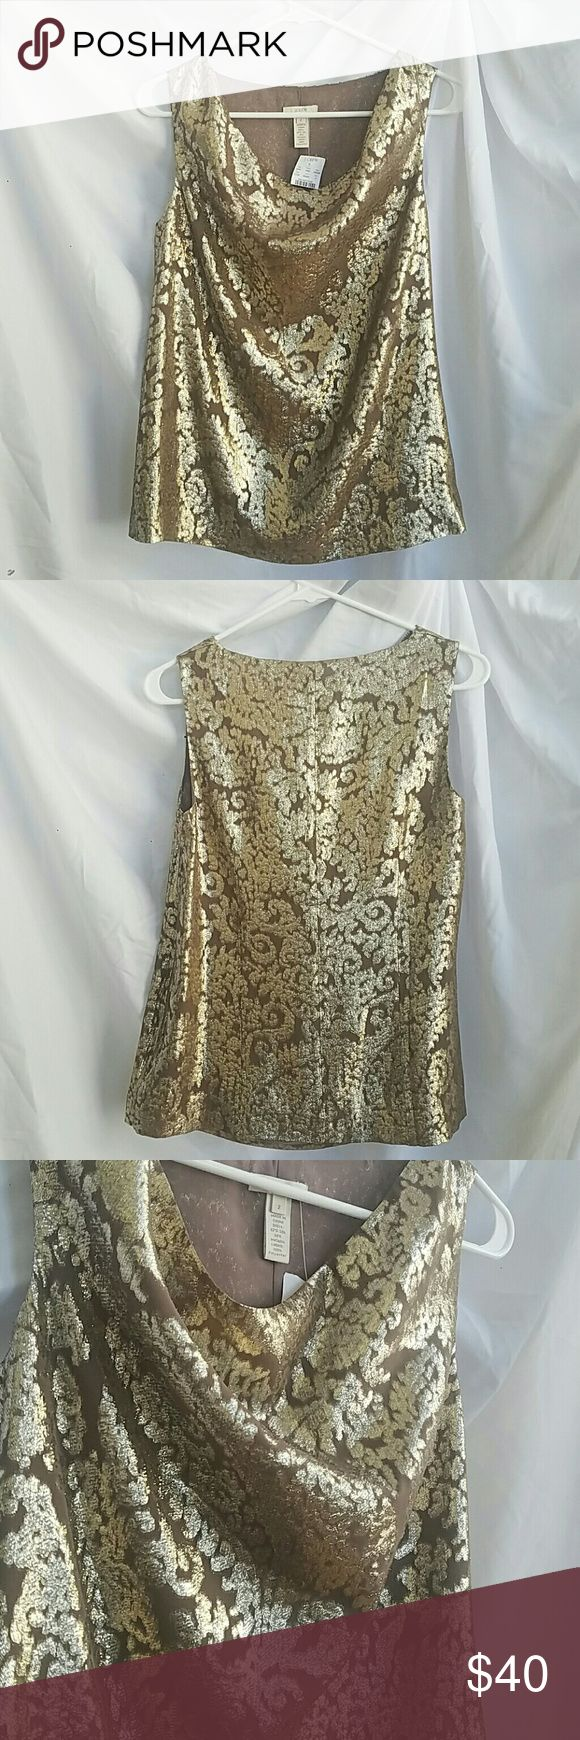 NWT J Crew Sleeveless Metallic Blouse Sz 2 NWT J Crew sleeveless blouse with cowl neck. Pattern features dark tan and gold metallic. Partial Size on side. Size 2. Perfect for winter and the holidays! J. Crew Tops Blouses